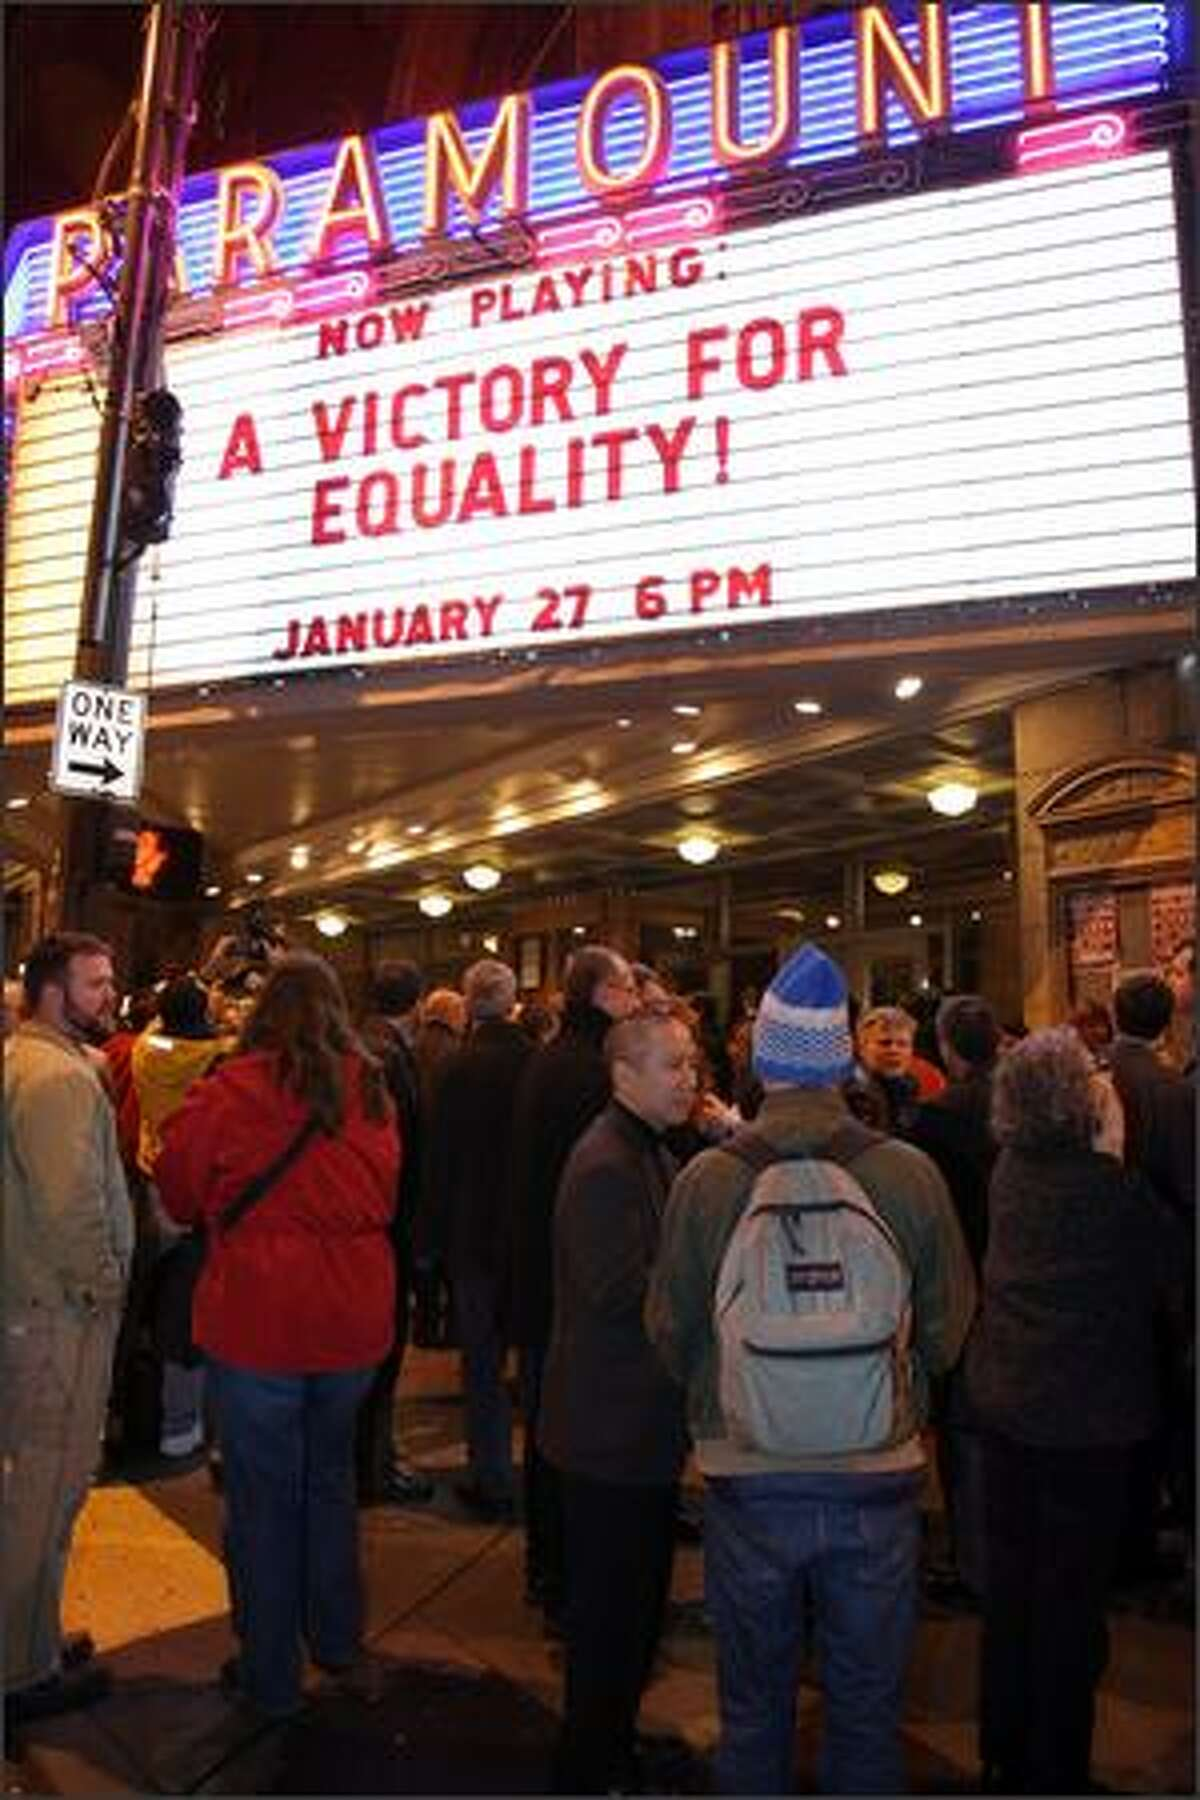 The Paramount Theatre was the scene of a celebration Friday over passage of an anti-discrimination bill.